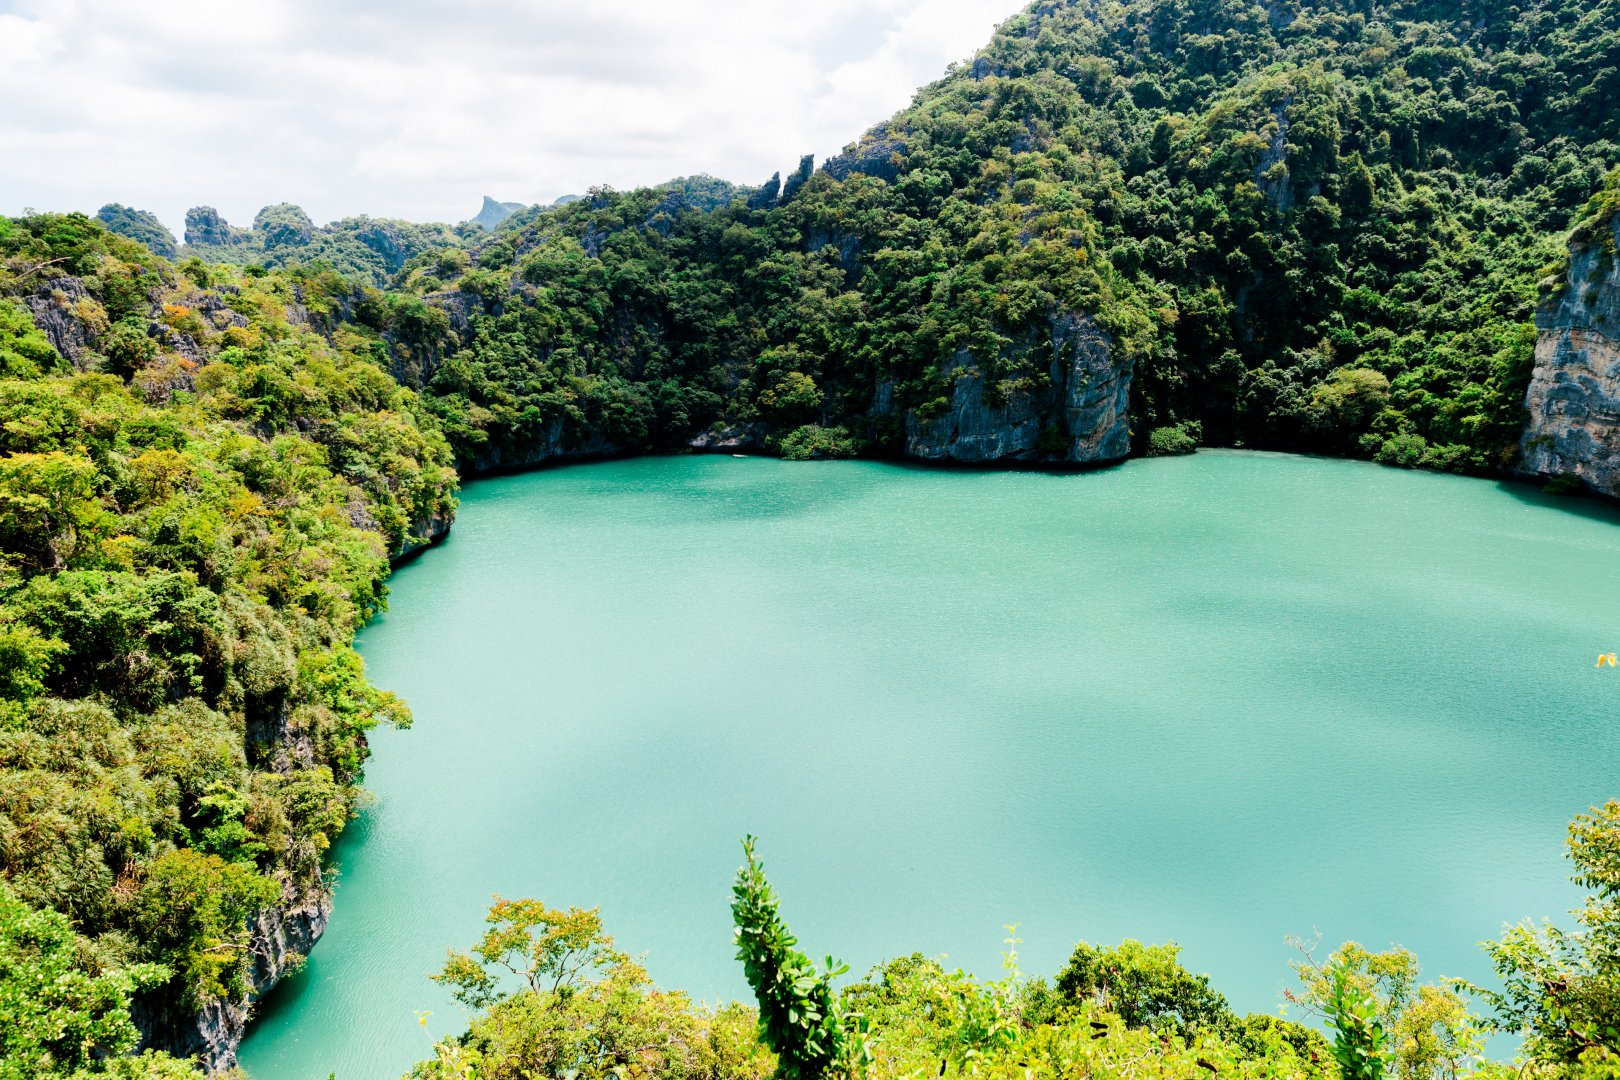 Body of water Nature Natural landscape Water resources Vegetation Water Green Nature reserve Reservoir Lake Biome Sky Lagoon Tree River Tropics Hill station National park Forest Landscape Jungle Bay Tourism Maar Watercourse Theatrical scenery Vacation Rainforest Plant State park